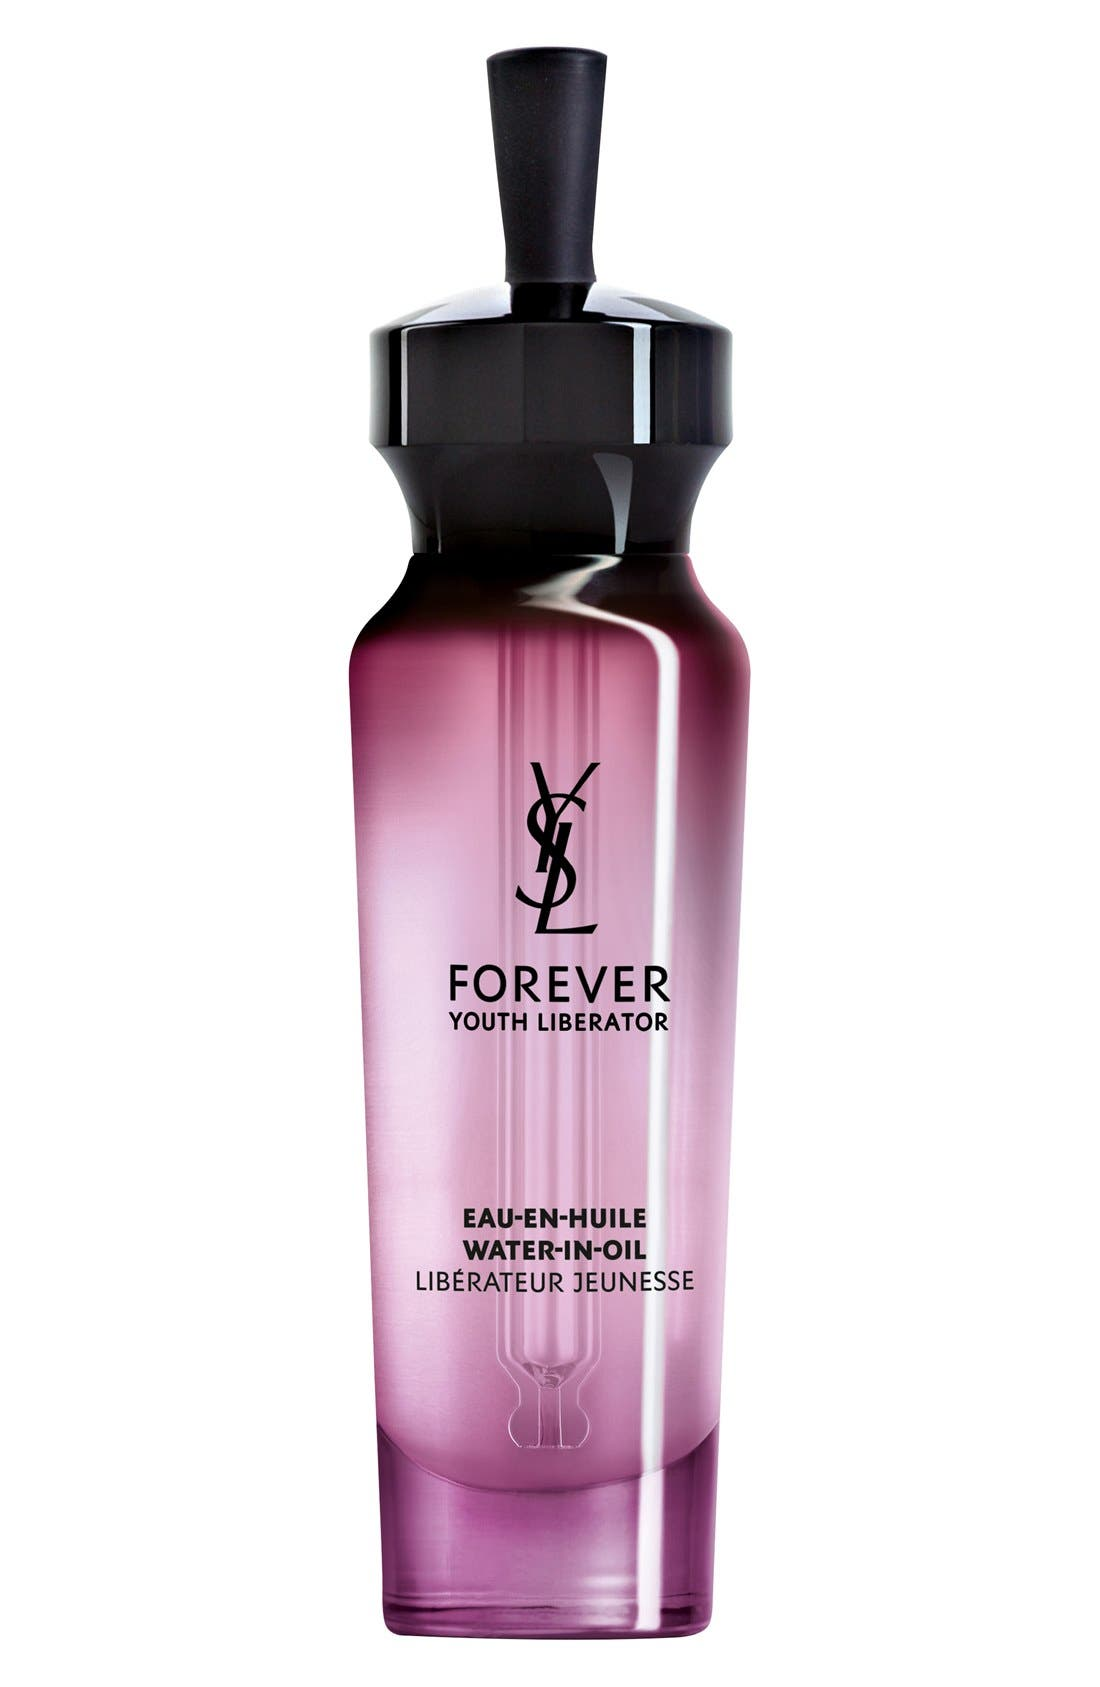 Yves Saint Laurent 'Forever Youth Liberator' Water-in-Oil